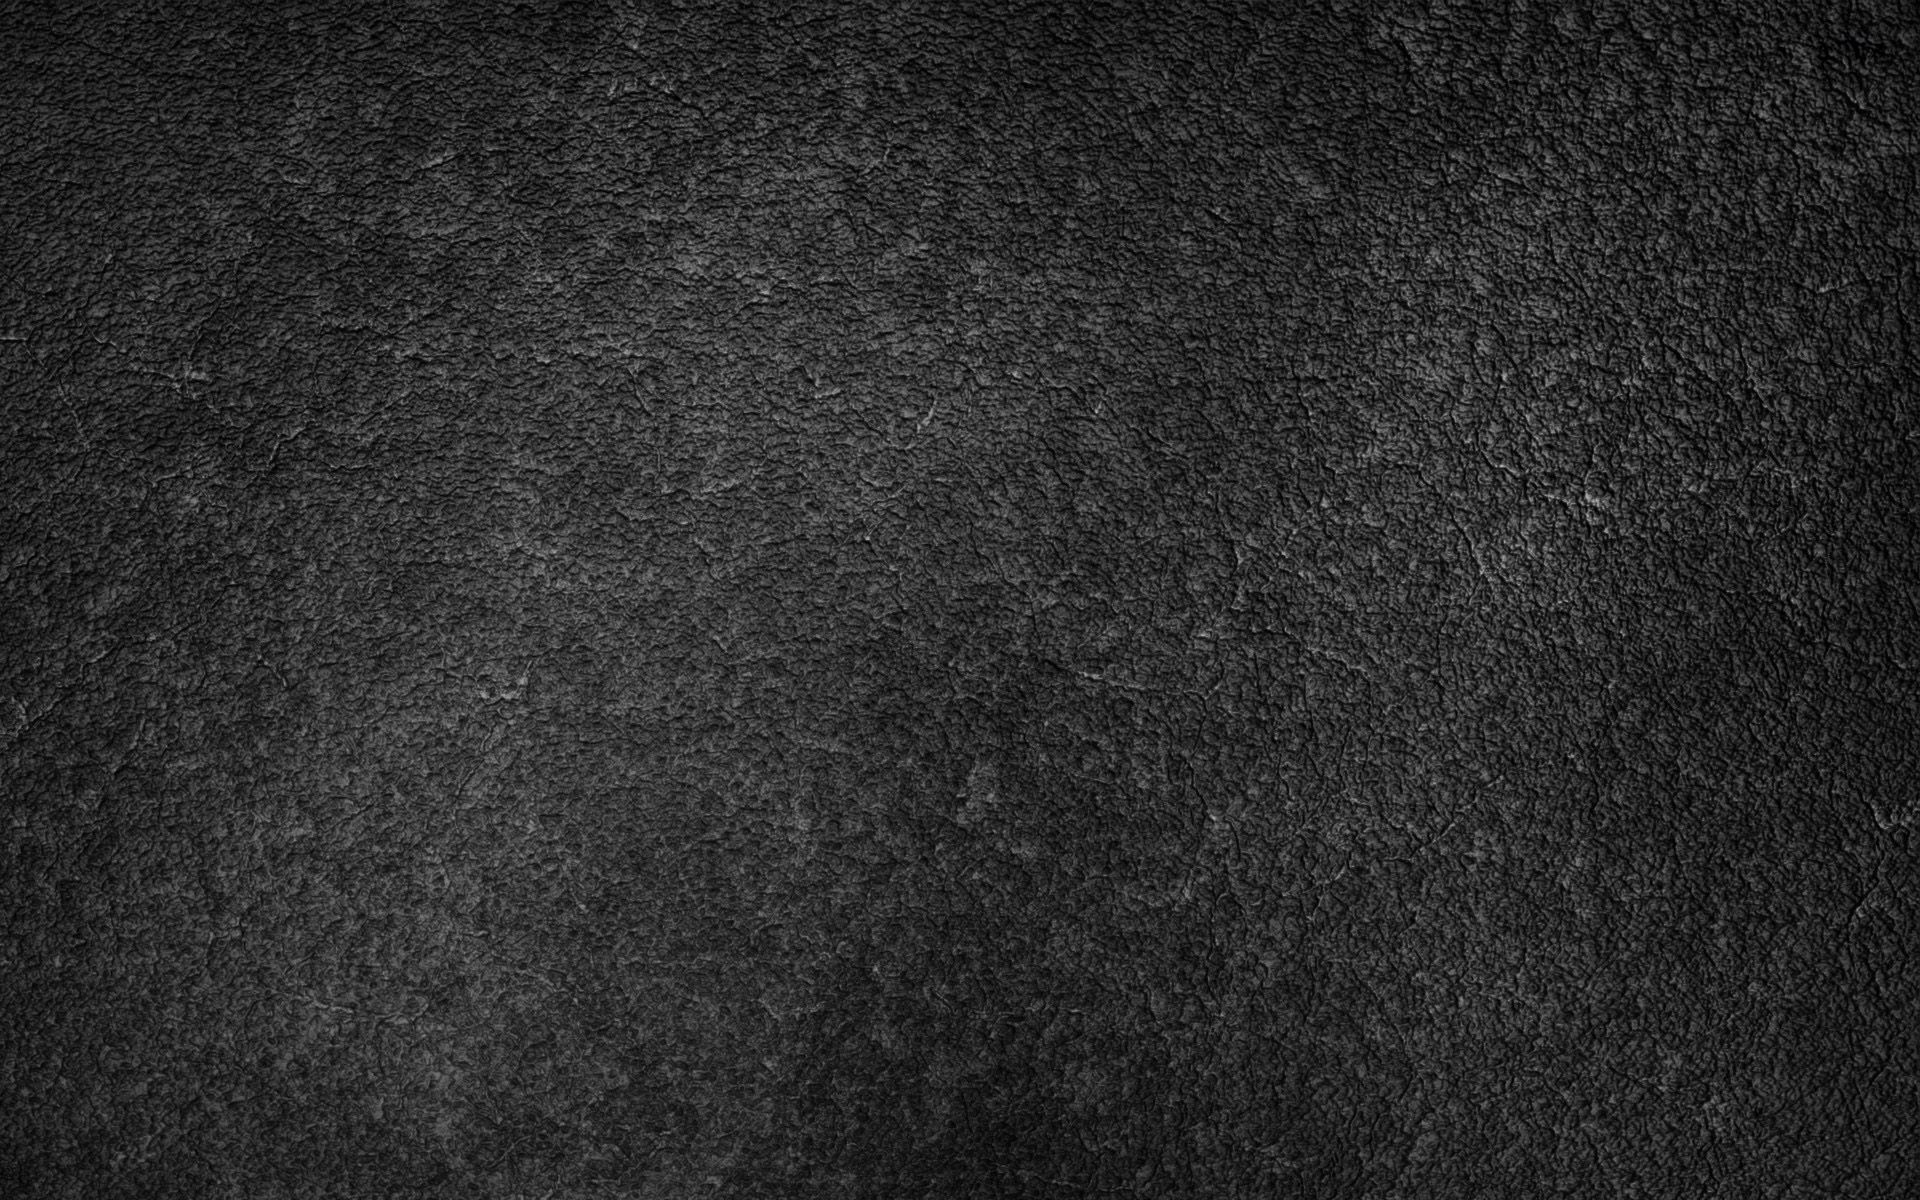 background cracked dark texture - photo #36